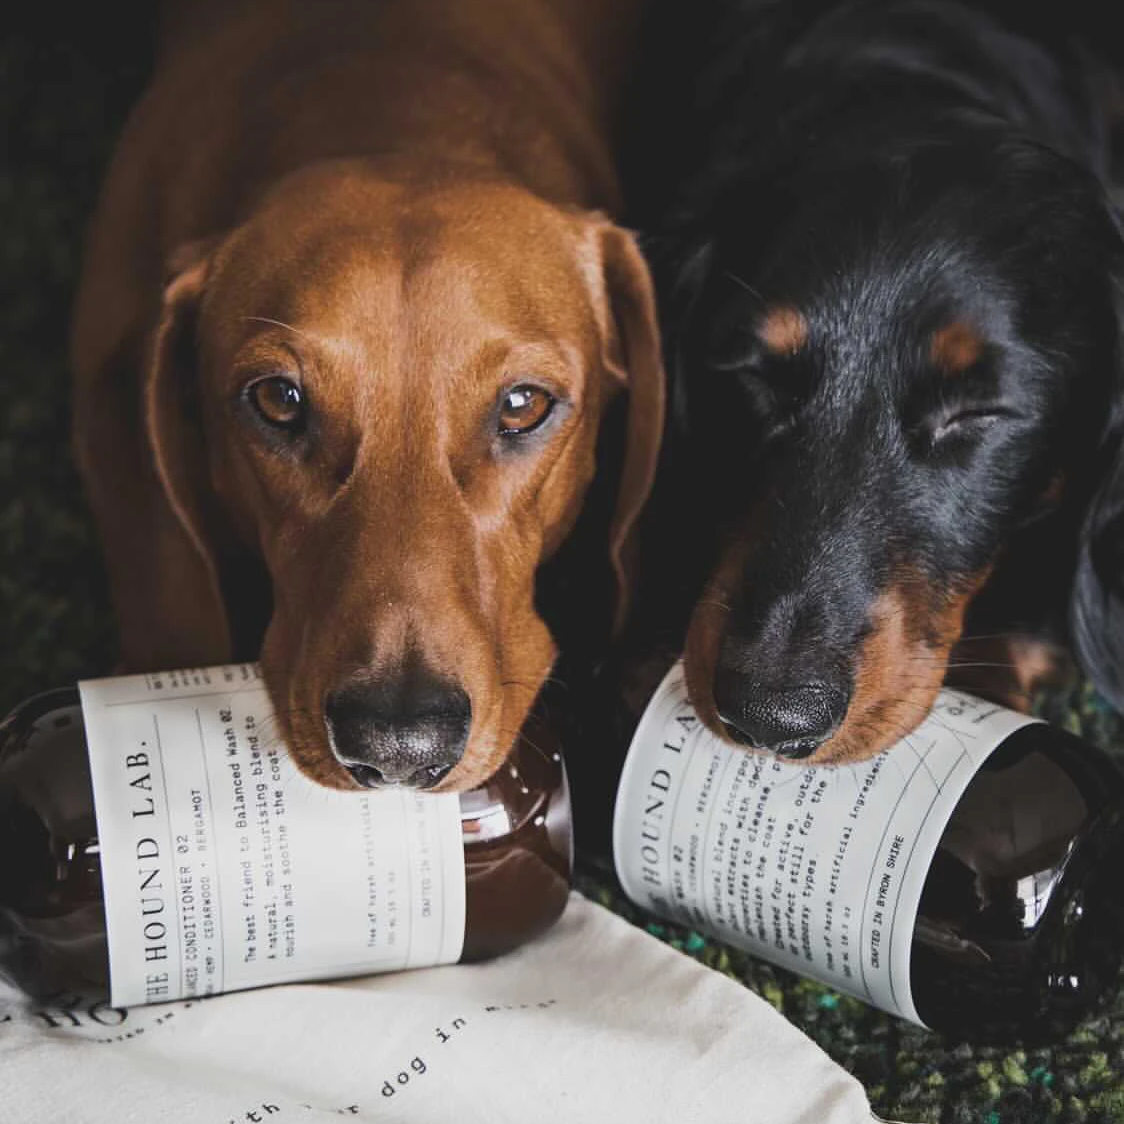 A customer review about The Hound Lab